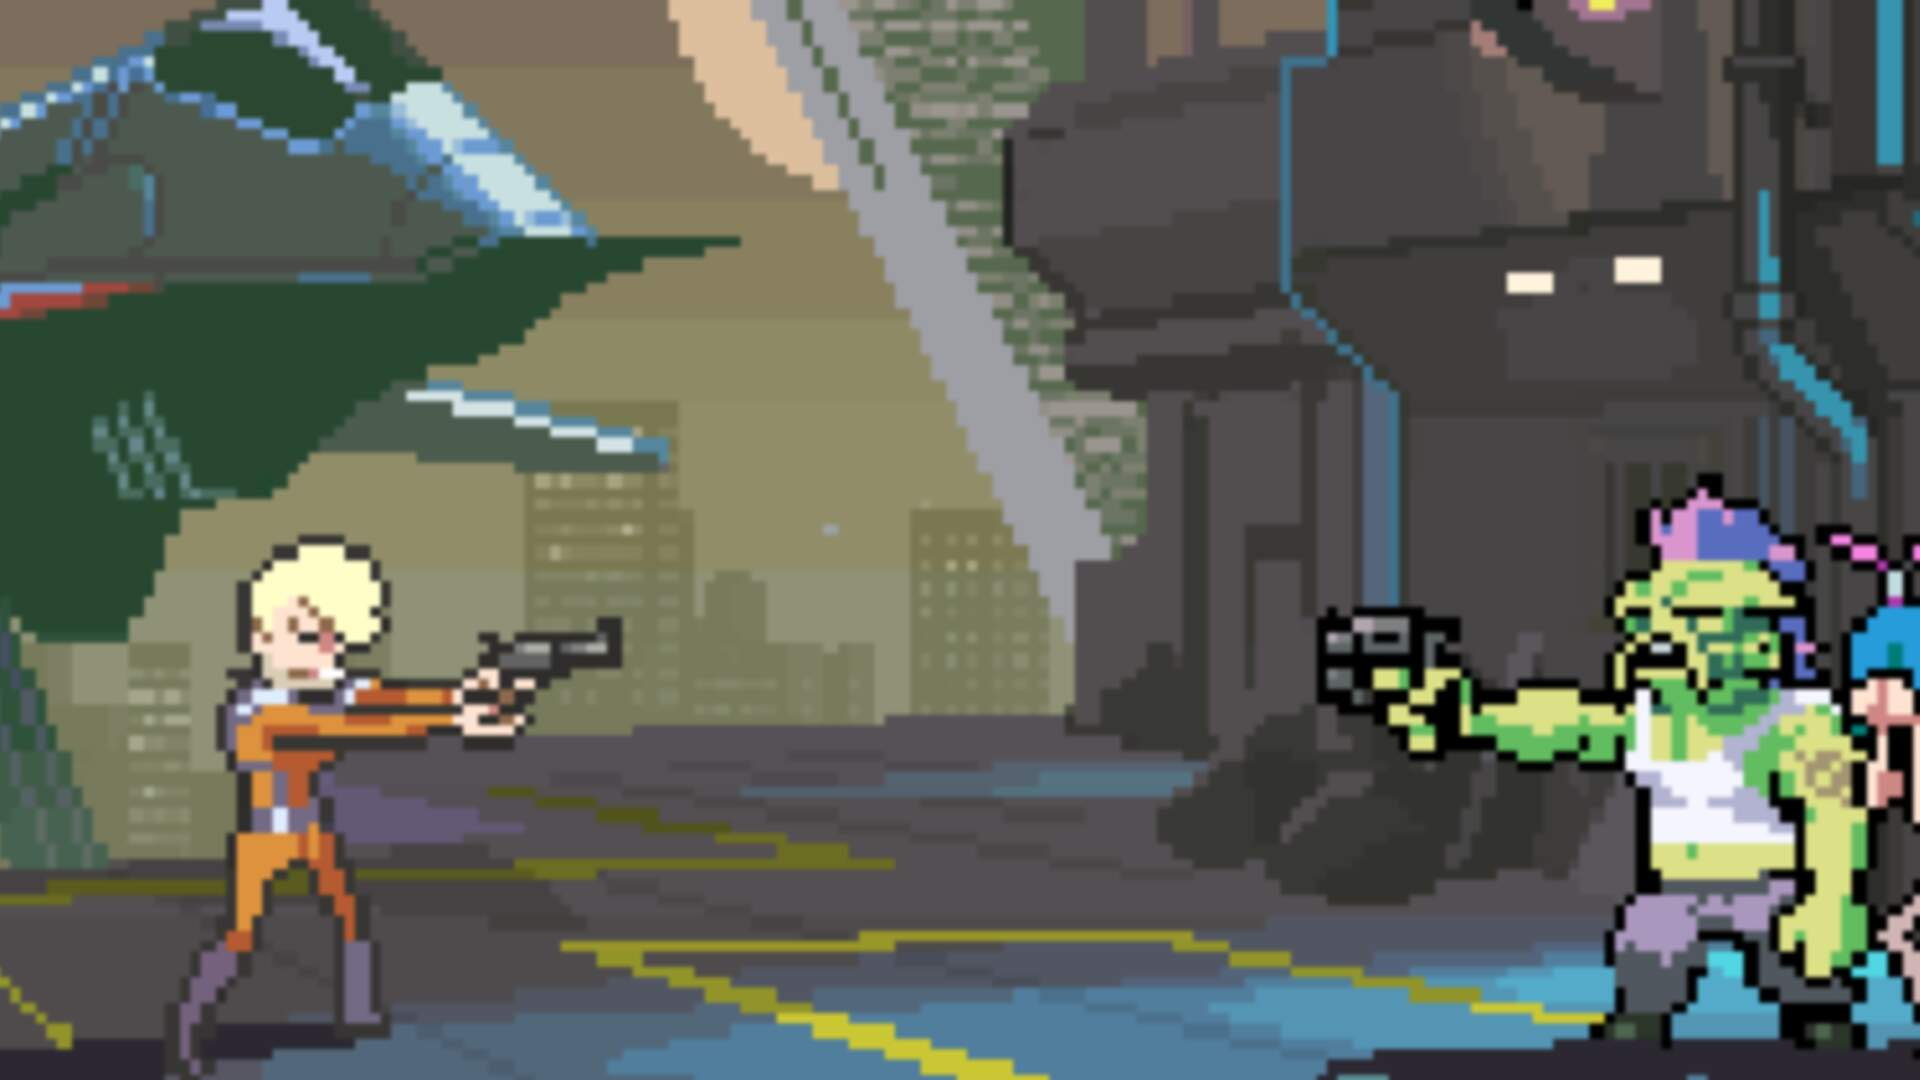 Starr Mazer Is a Retro Point-and-Click Shoot-Em-up Melting Pot